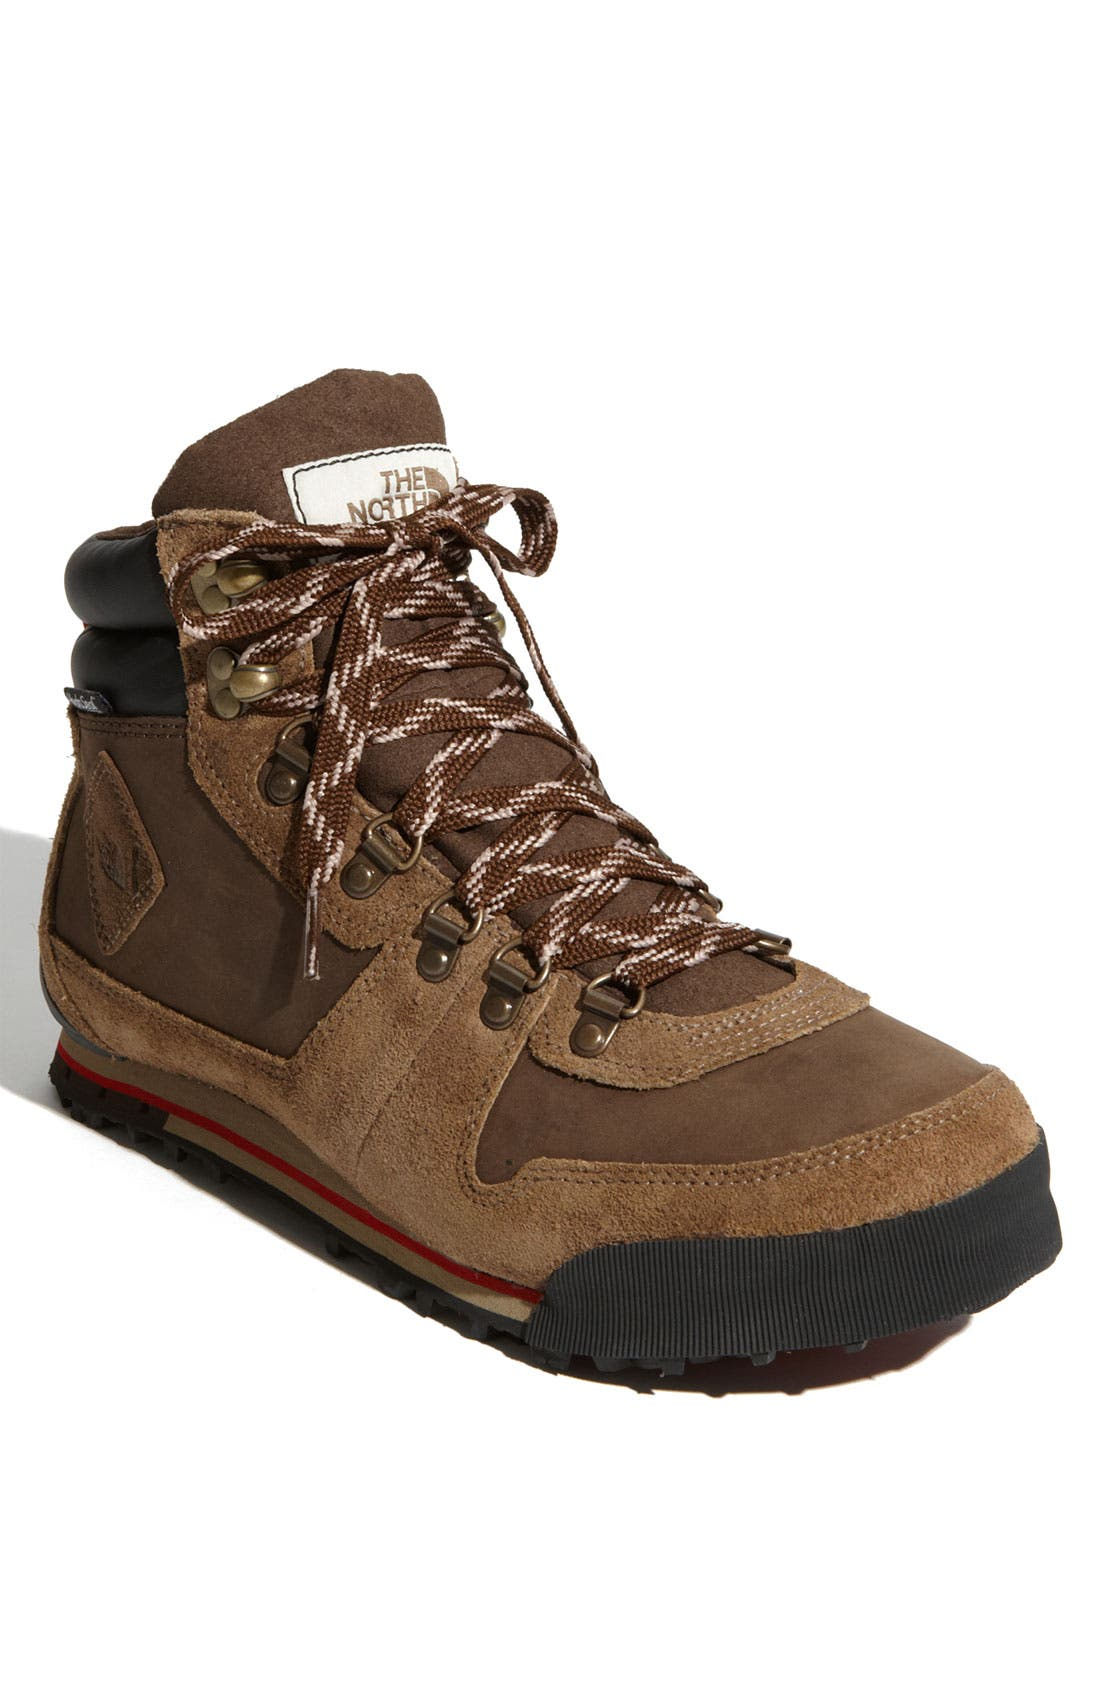 Main Image - The North Face 'Back to Berkeley' Boot